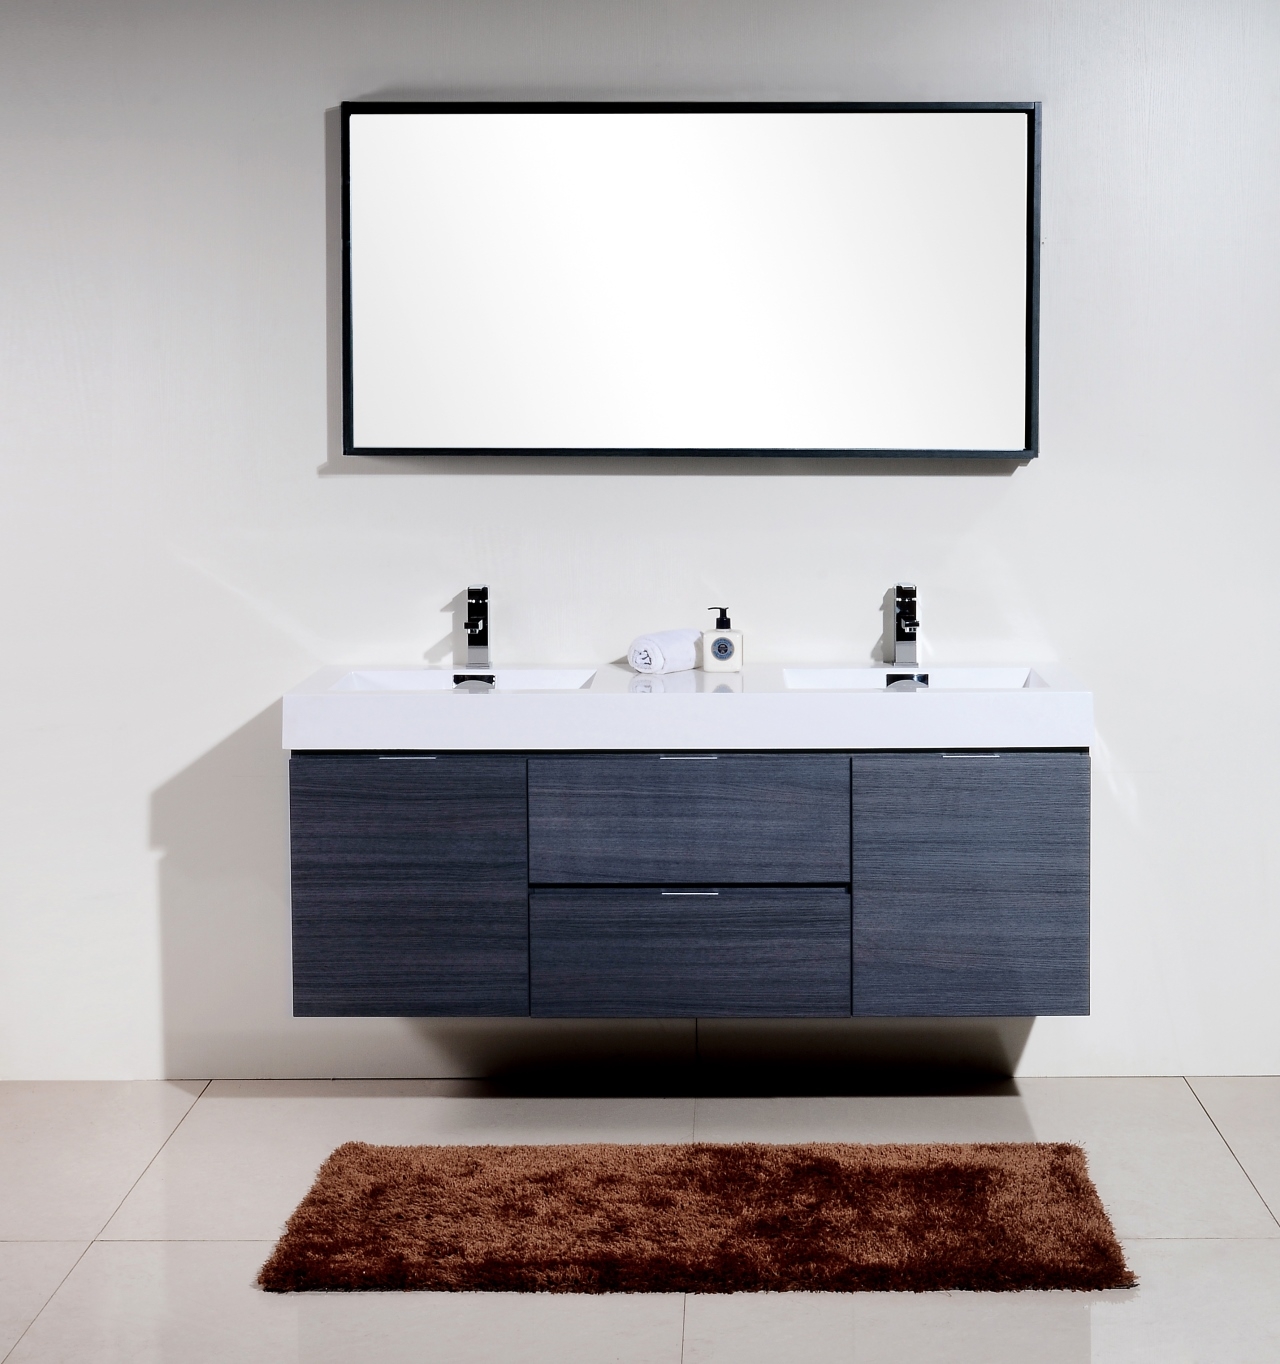 Bliss 60u2033 Gray Oak Wall Mount Double Sink Modern Bathroom Vanity Vanities,  Bliss, Double Sink Vanities, Wall Mount Vanities